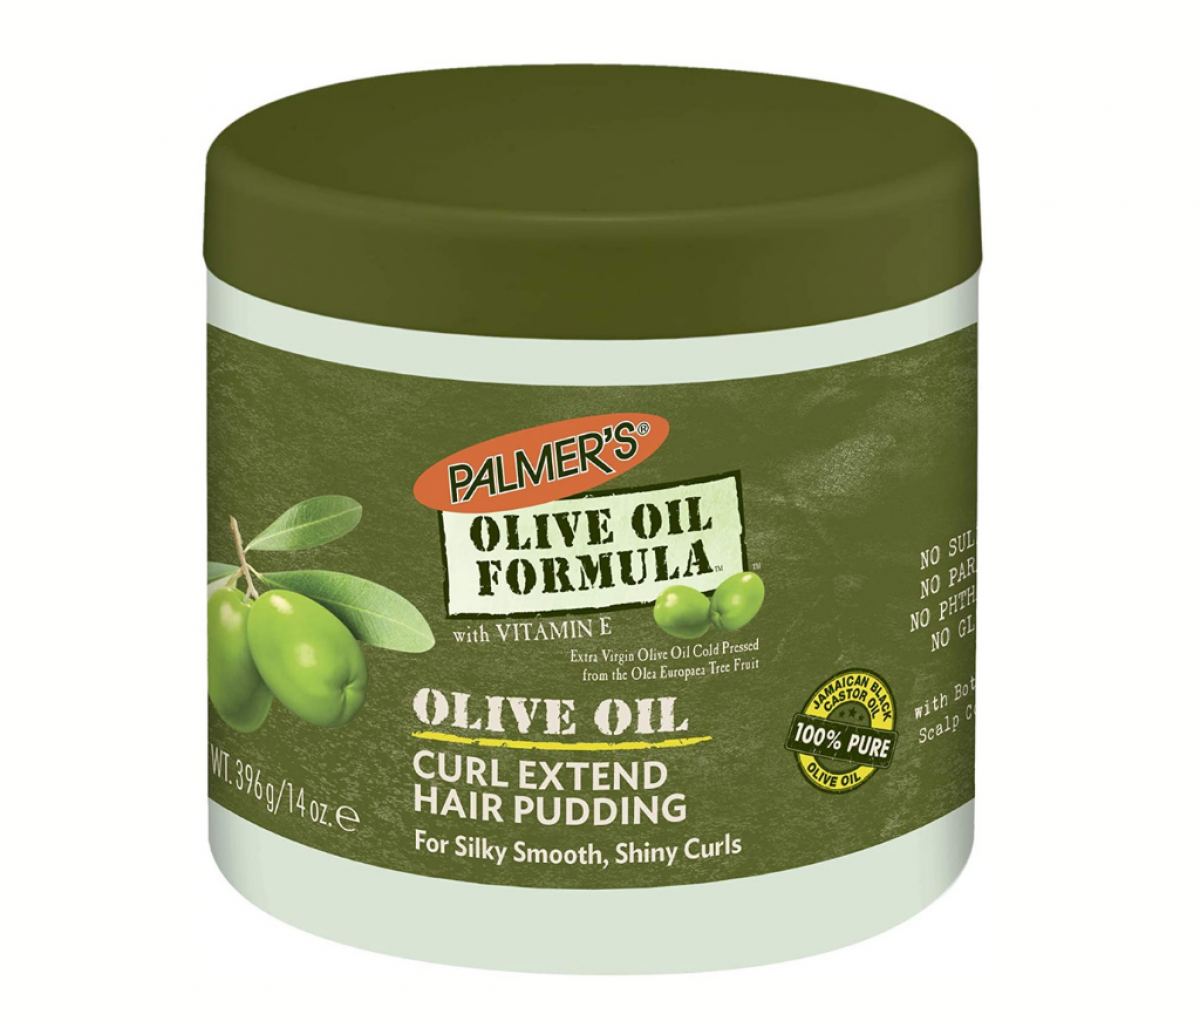 Palmers olive oil formula hair pudding